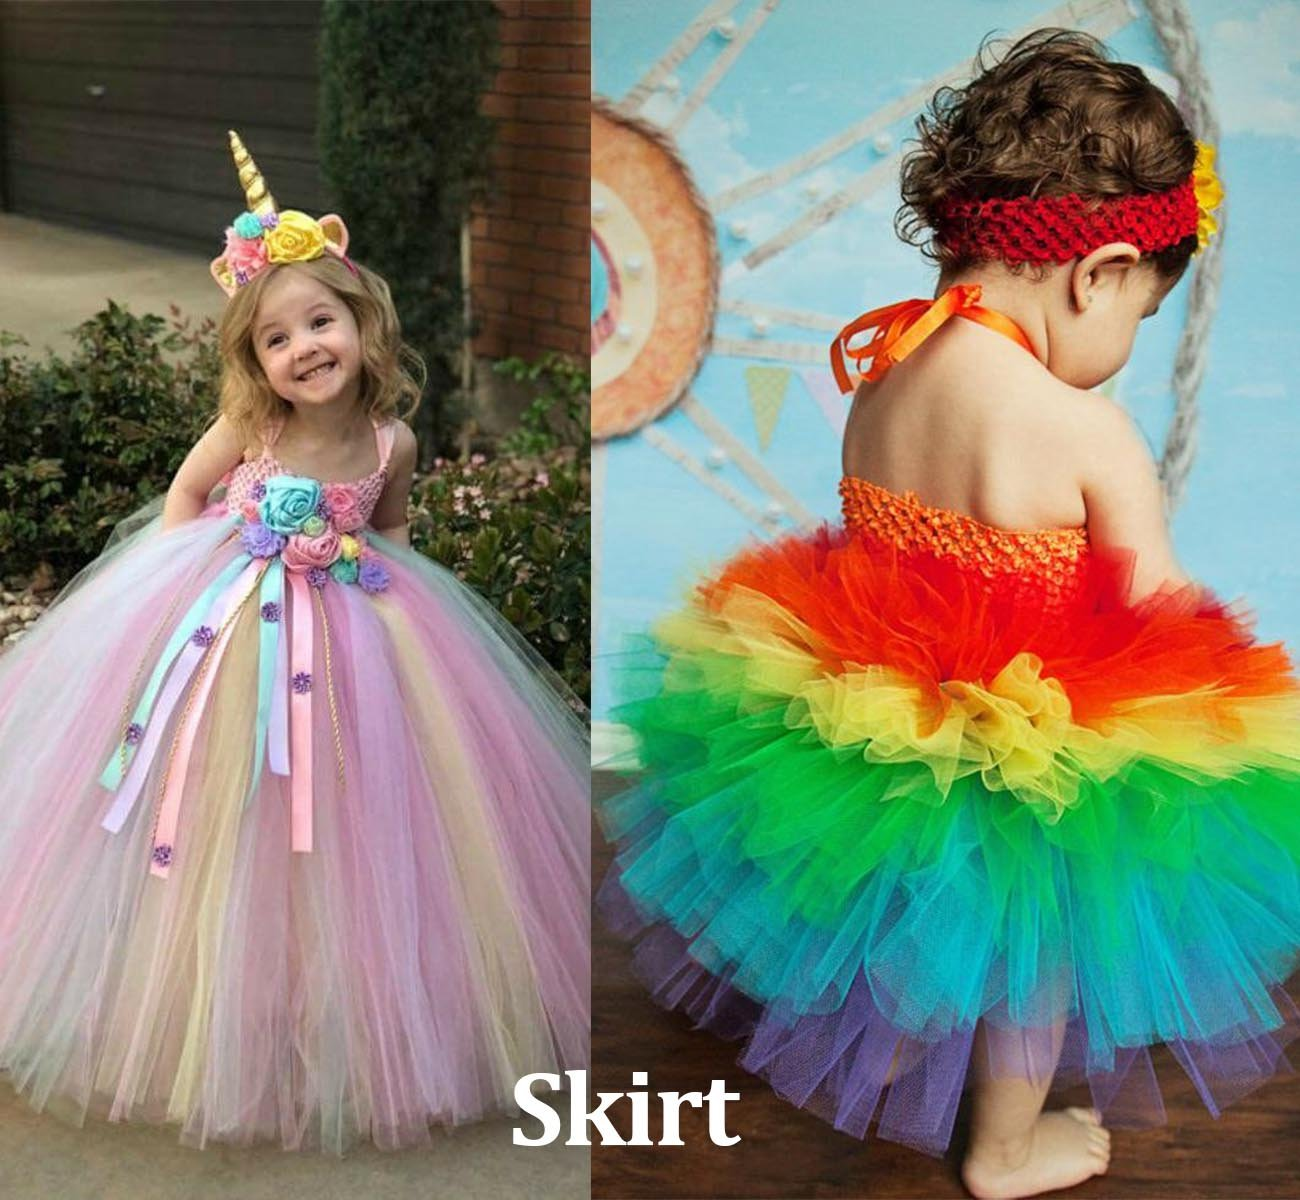 9 Tulle Rolls Rainbow Tulle Colors Roll Fabric Spool 6'' by 25 Yard Spool for Wedding Tutu and Table Skirt Decoration by ilauke (Image #3)